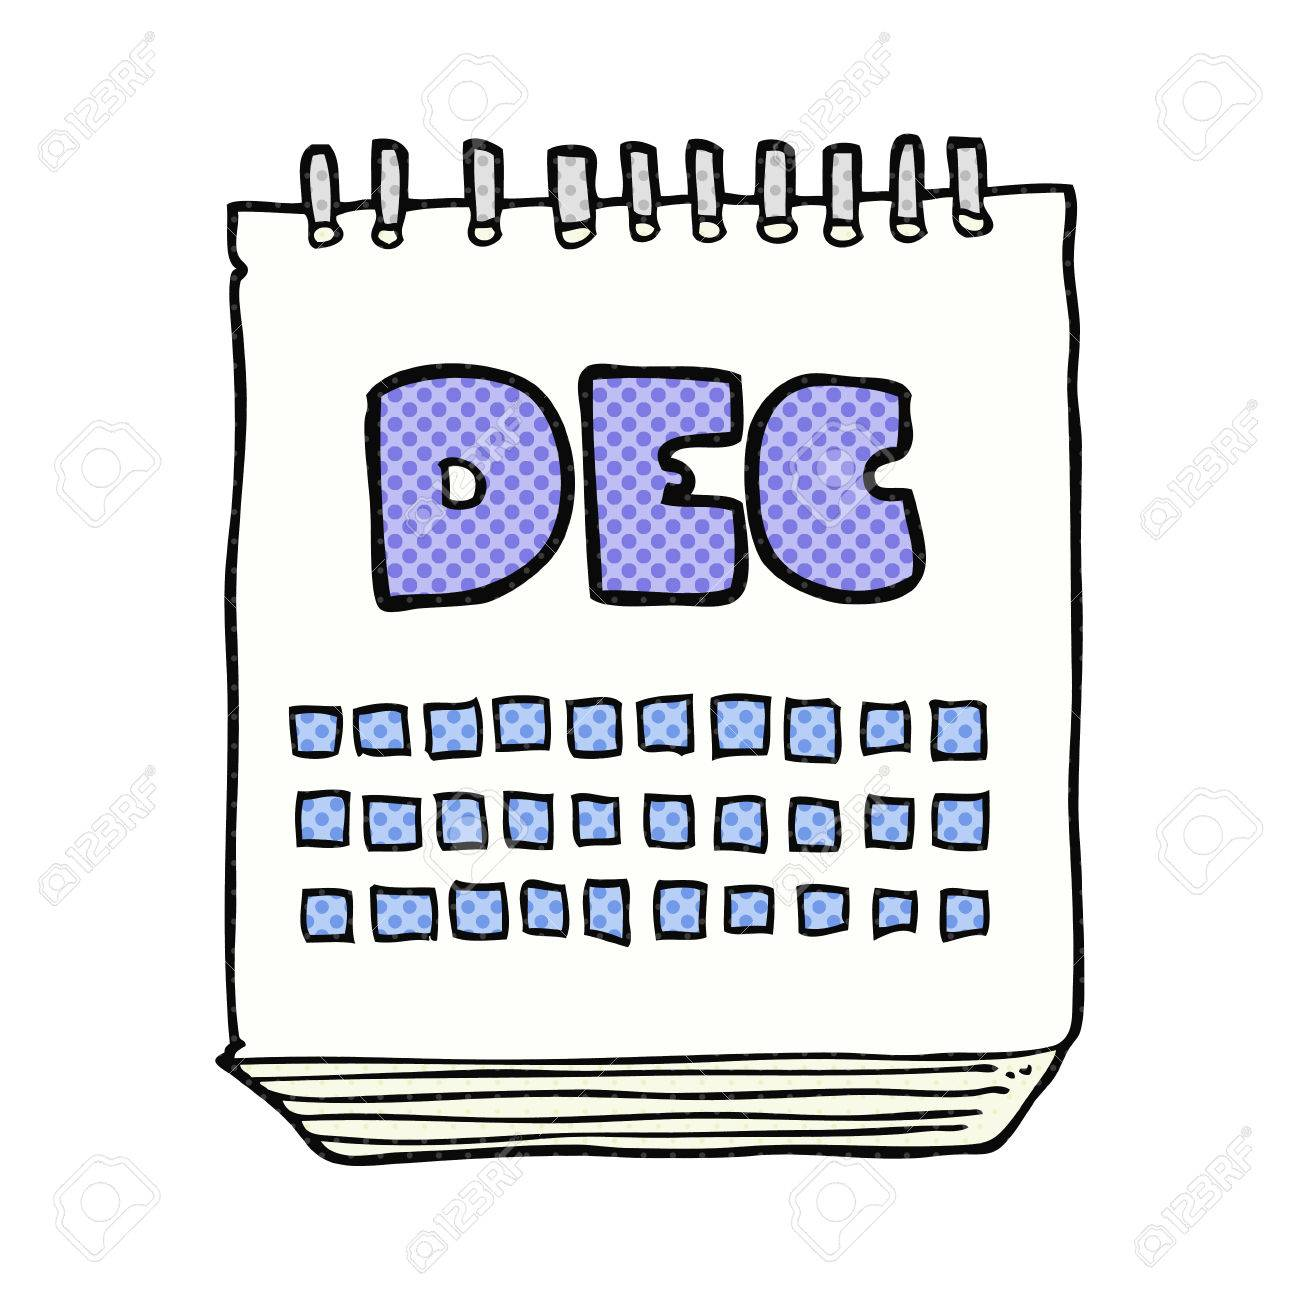 December Calendar Art : Freehand drawn cartoon calendar showing month of december royalty